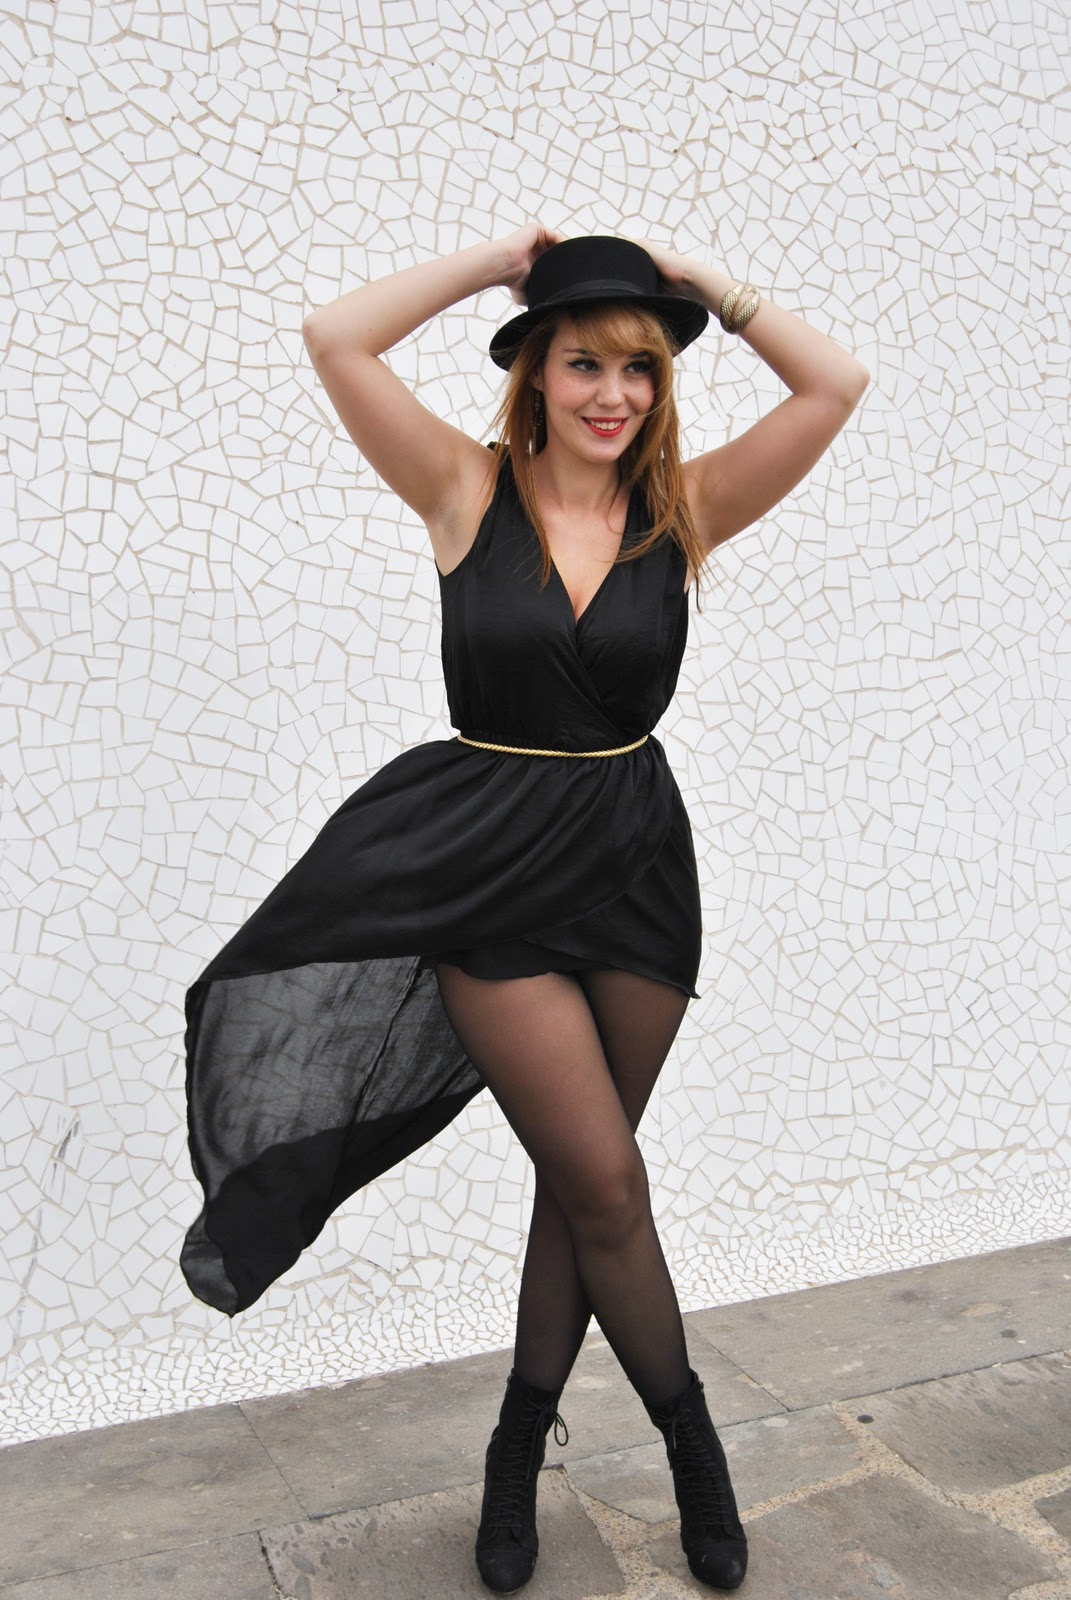 nery hdez, lbd, inlovewithfashion, hat